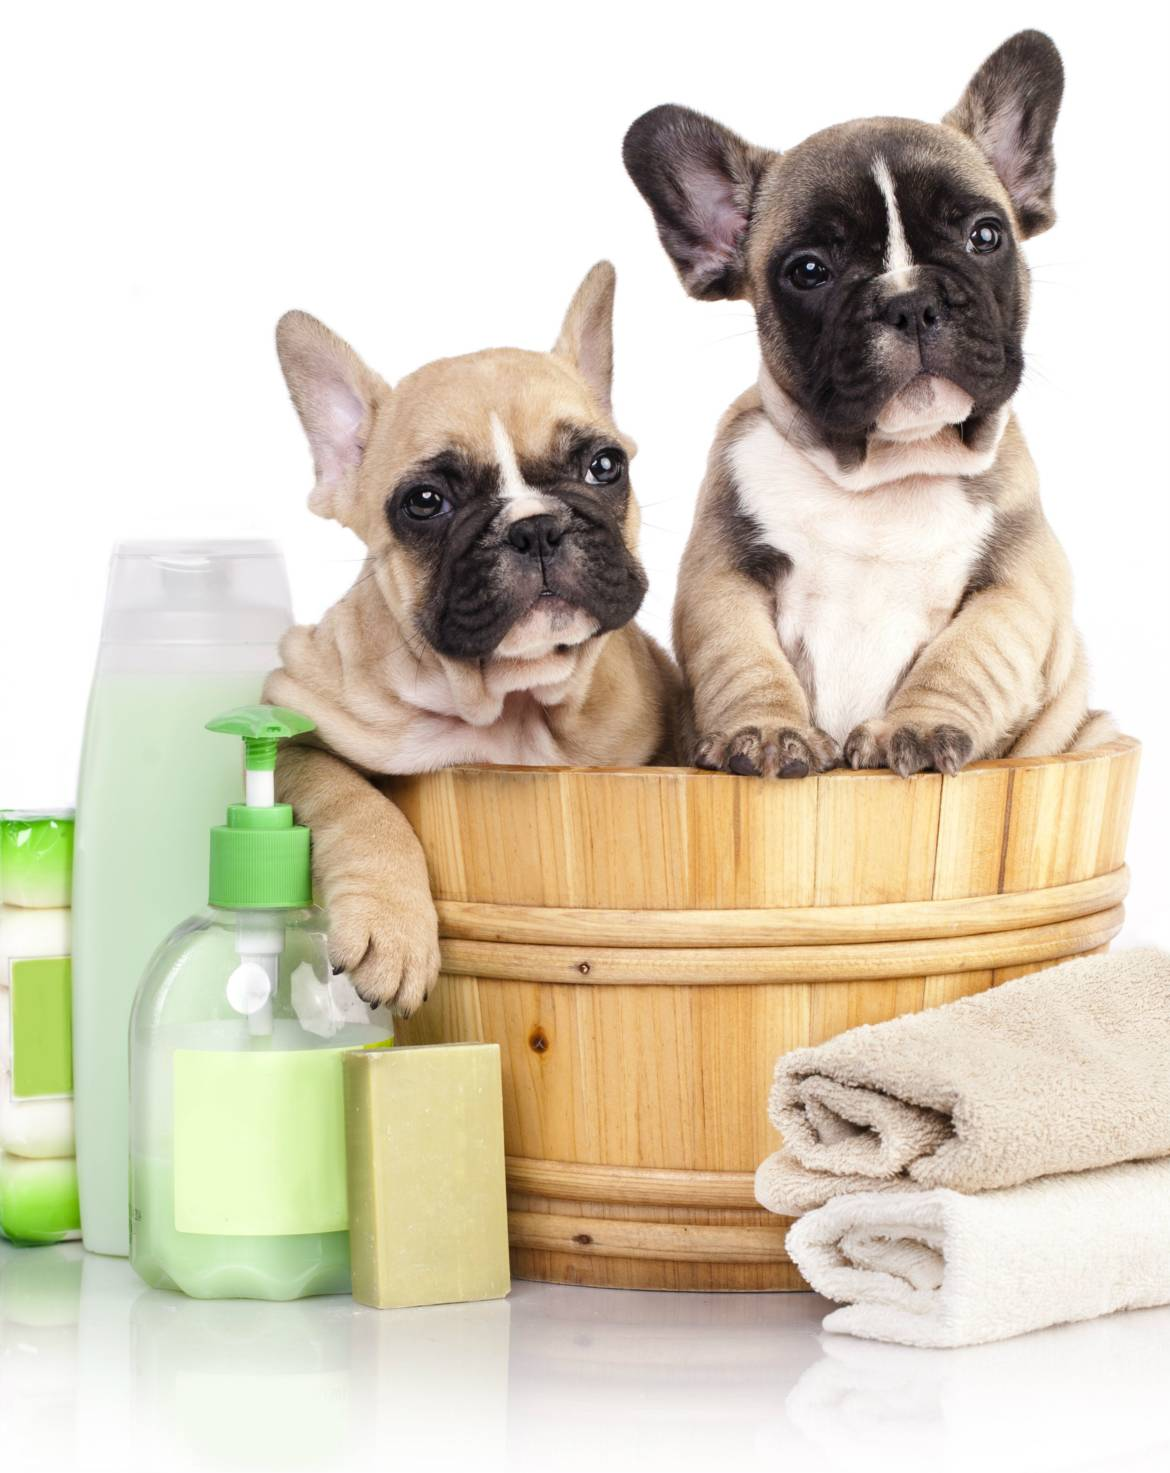 dog-grooming-services-c.jpg